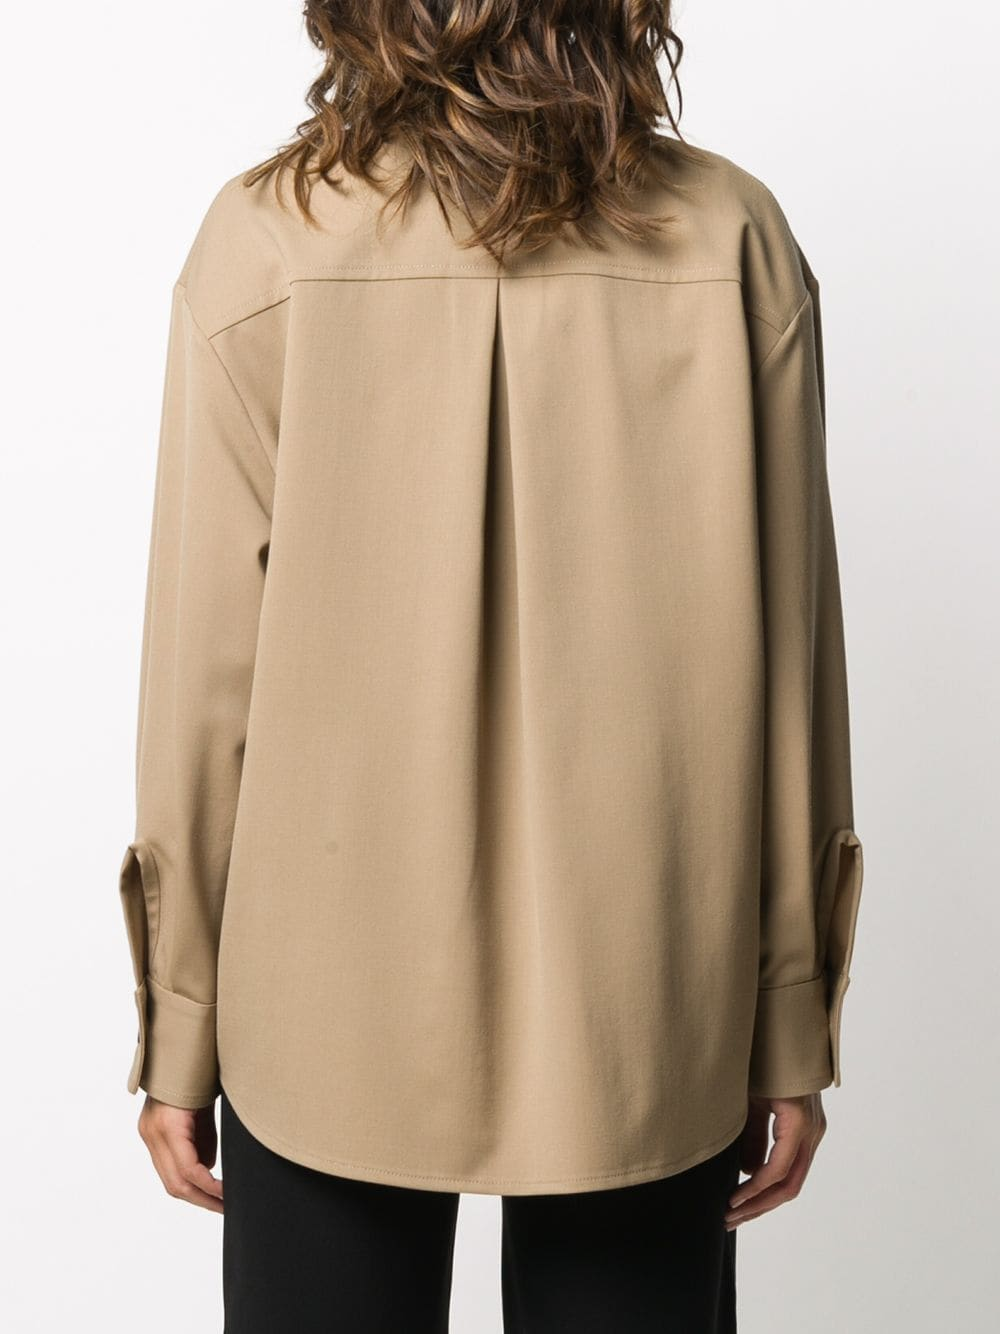 Light beige virgin wool blend oversized buttoned shirt  ALBERTO BIANI |  | MM841-WO024114